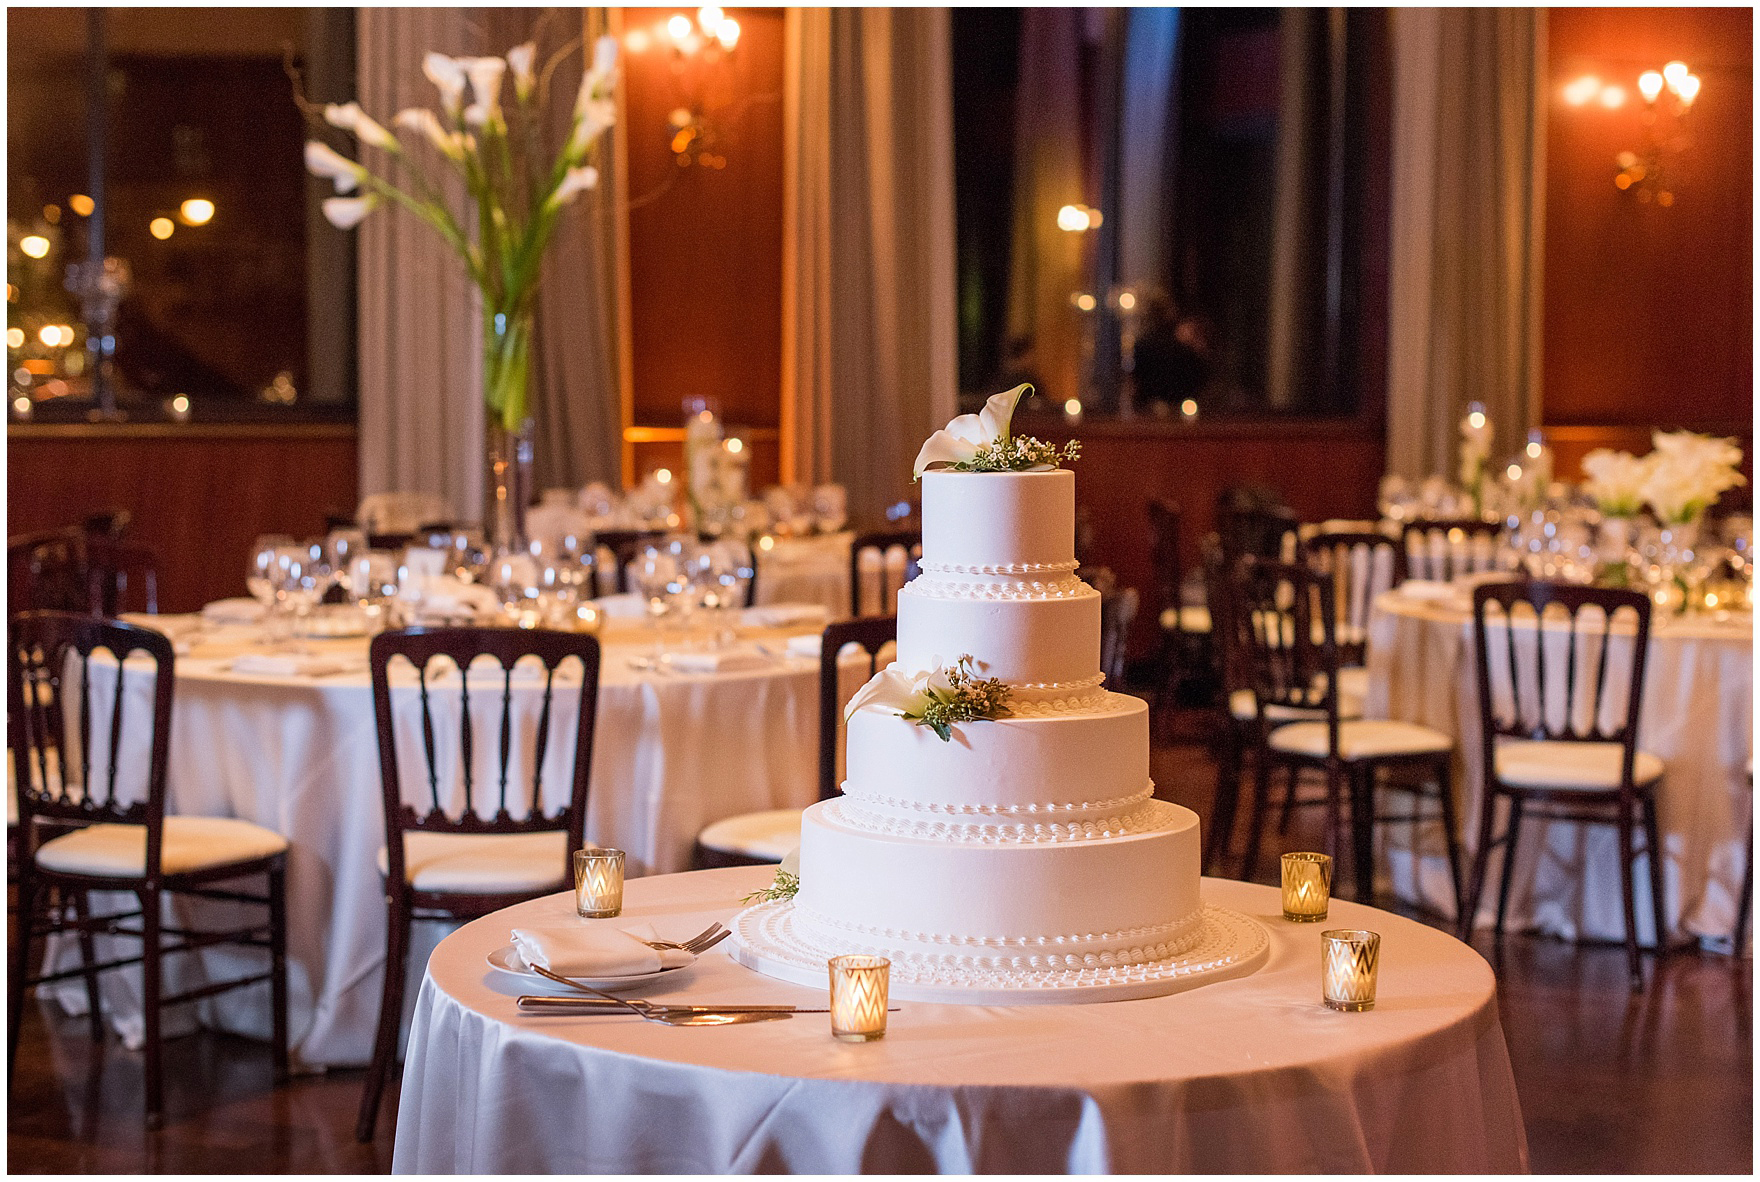 A tiered wedding cake for a Newberry Library Chicago wedding reception.